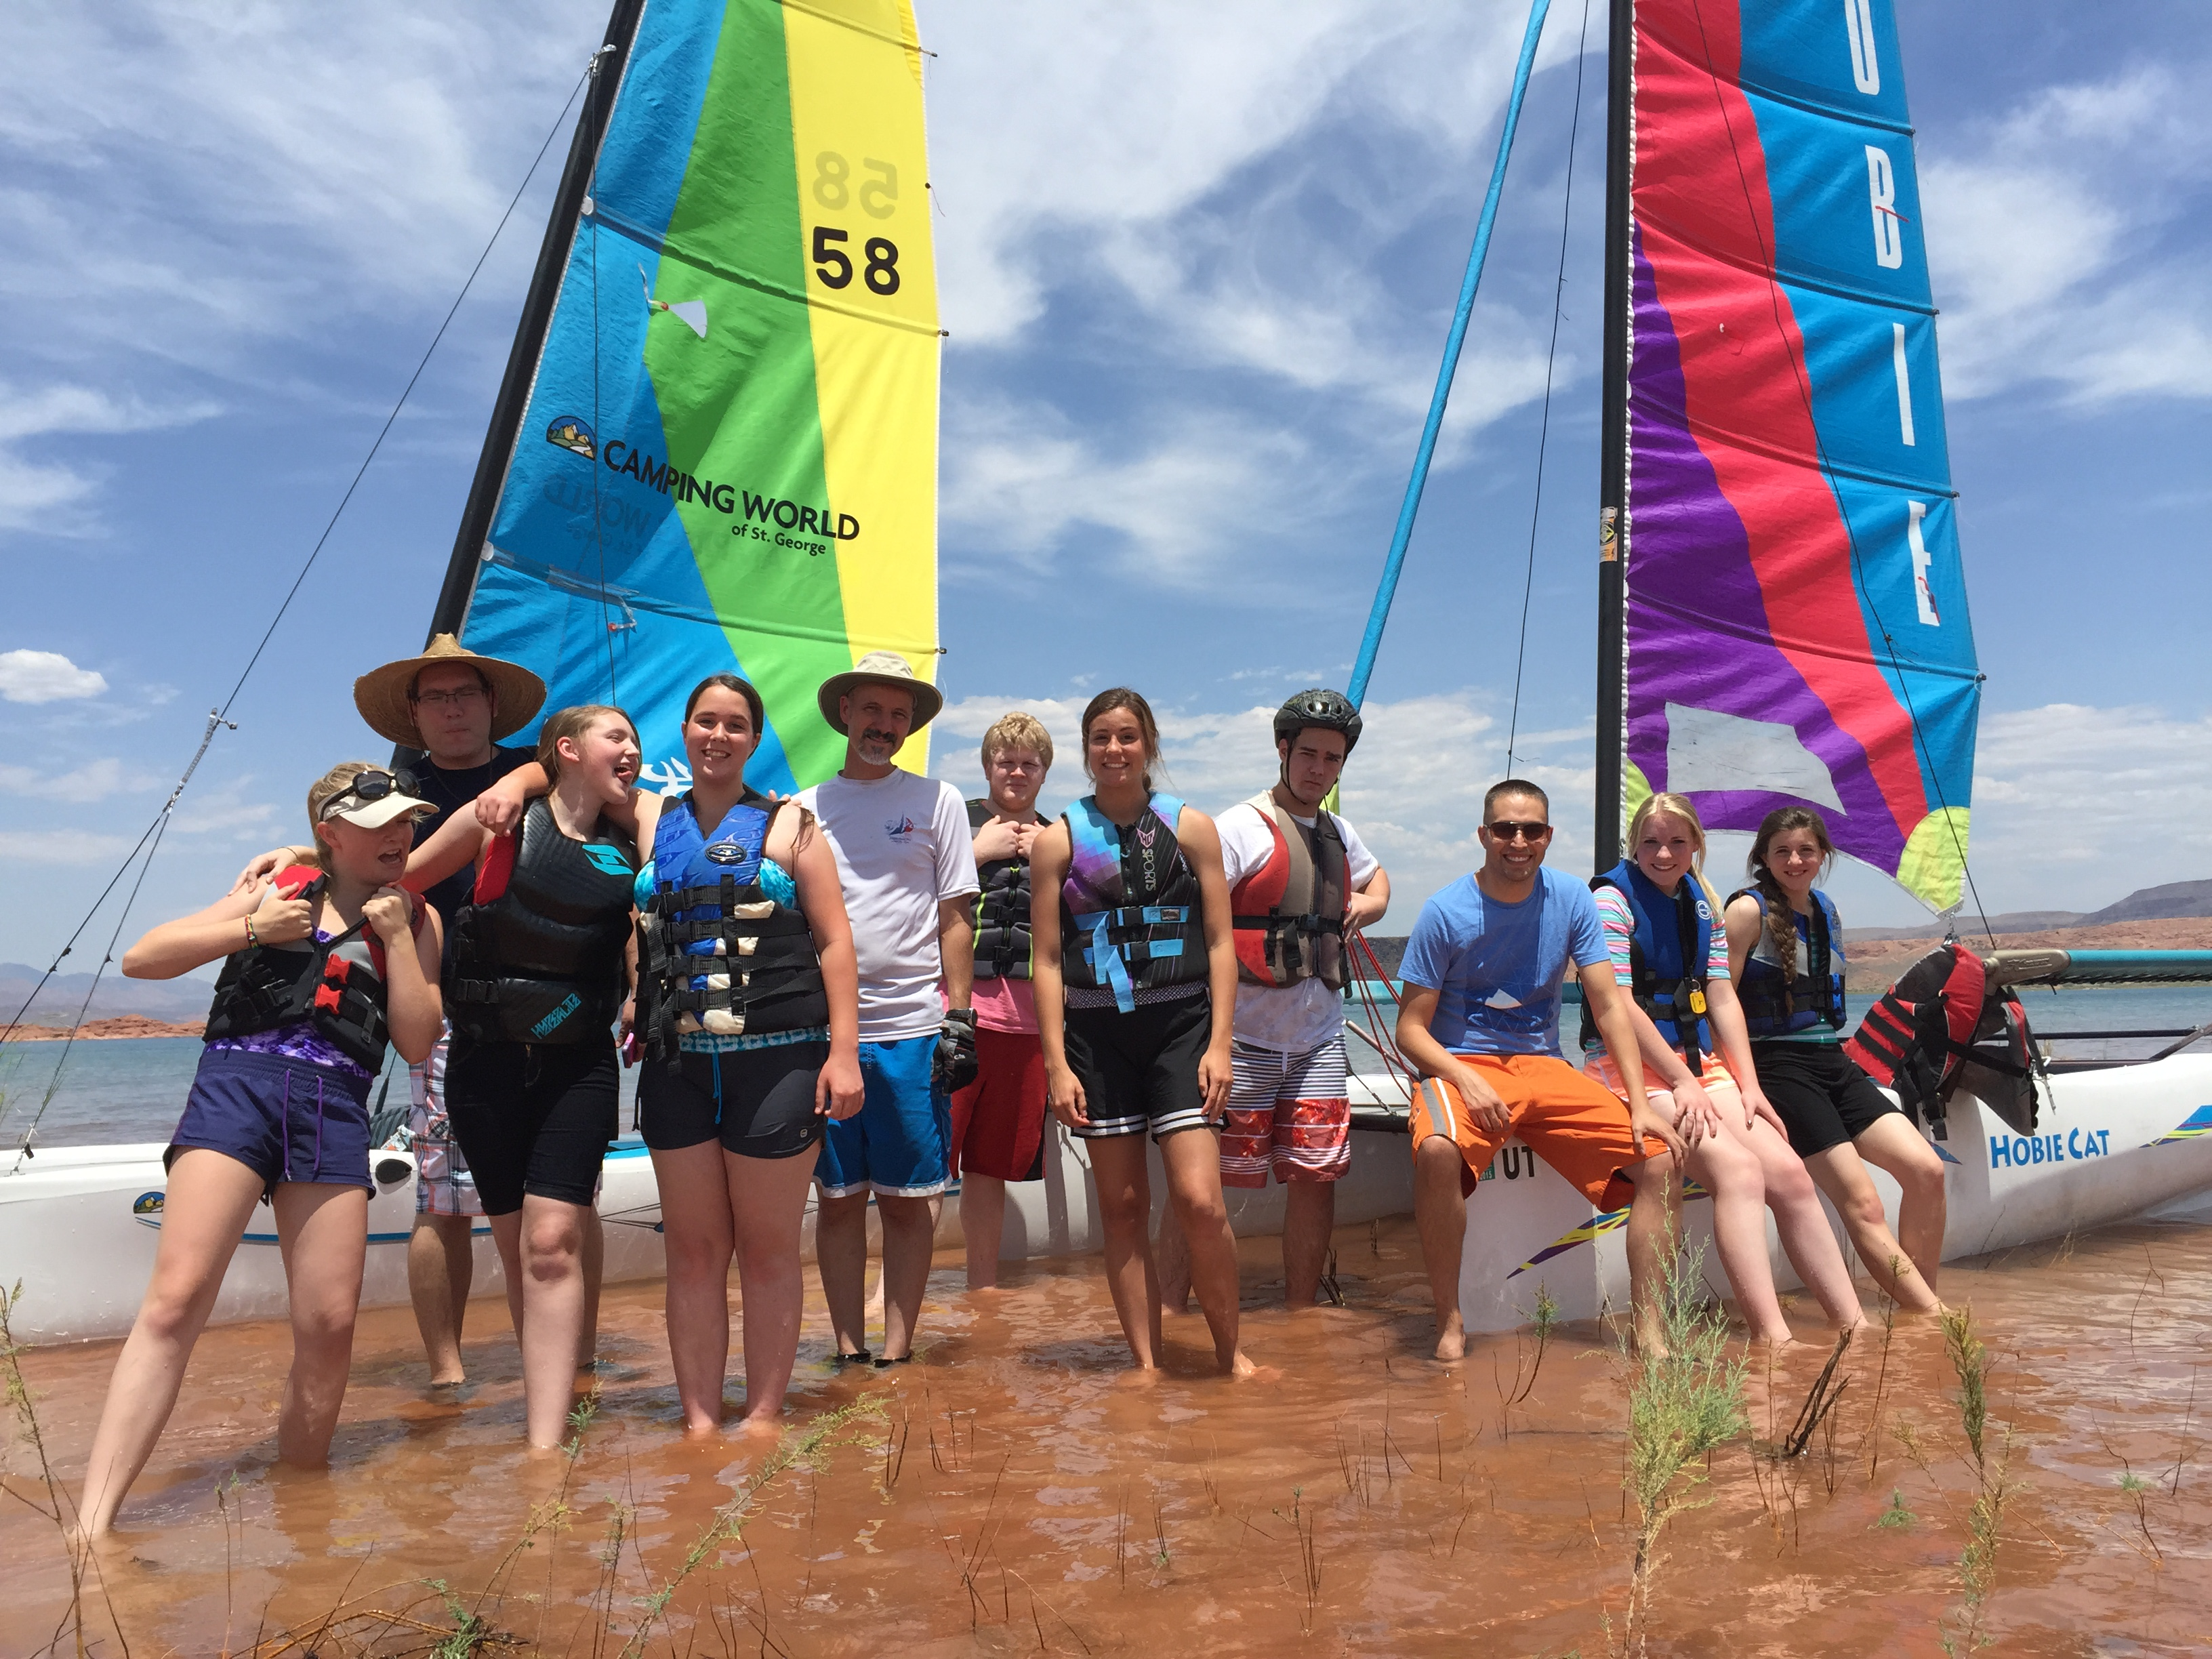 This 2015 photo shows youth posing by some sailboats during Raul Hevia's Youth Summer Sailing School at Sand Hollow Reservoir, Sand Hollow State Park, Hurricane, Utah, Summer 2015   Photo courtesy of Raul Hevia, St. George News